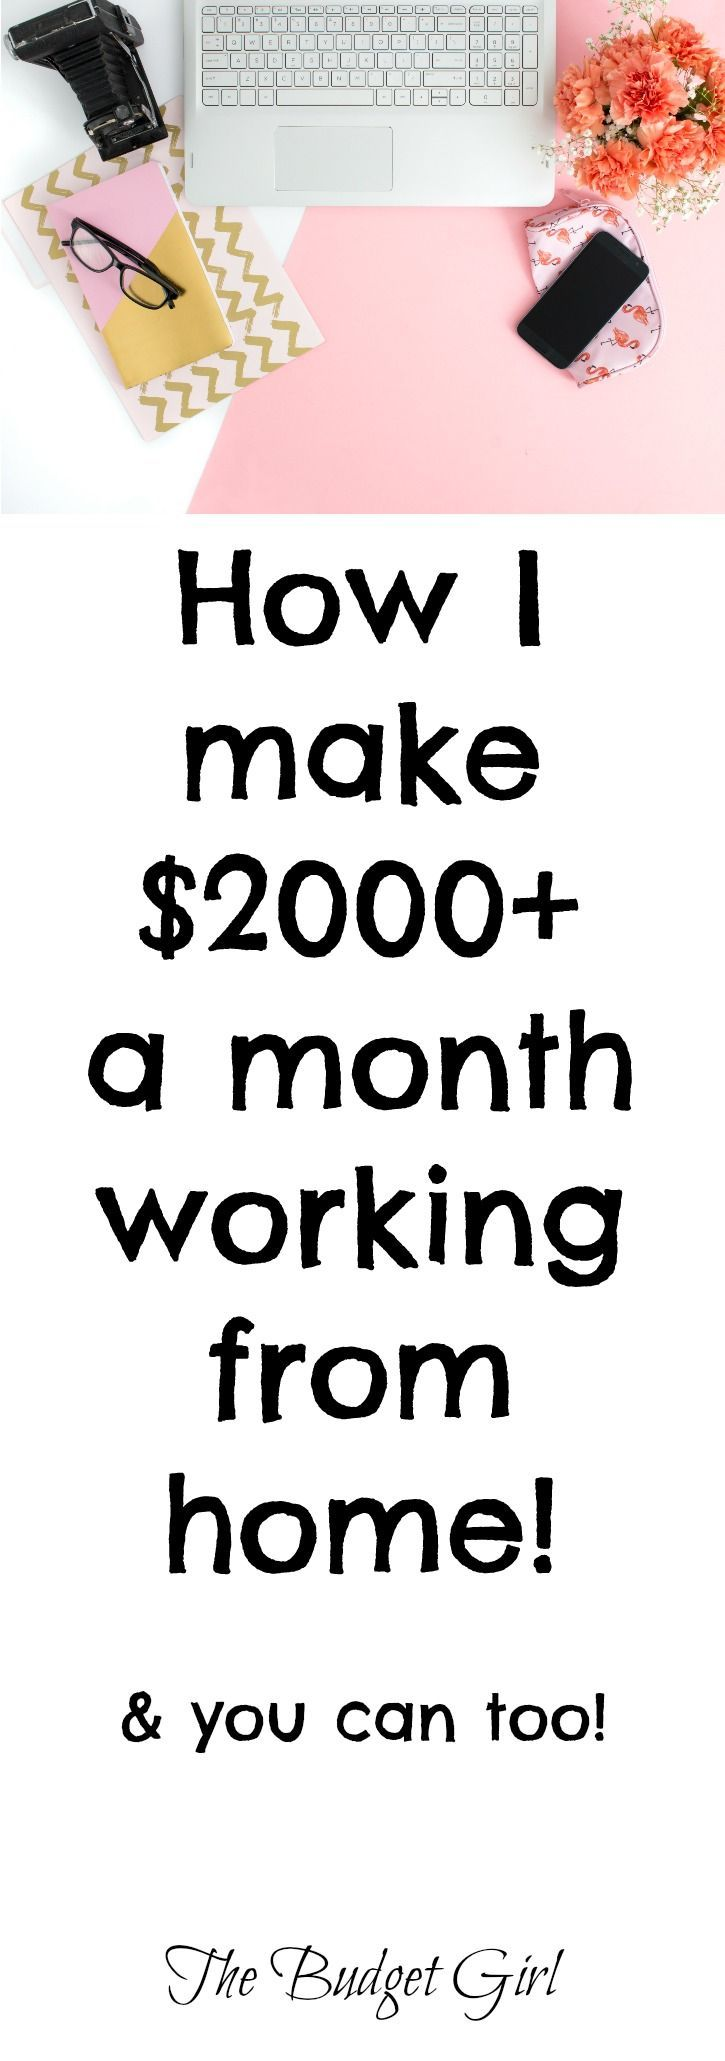 earn extra monty, work from home jobs, stay at home mom jobs, legit work from home jobs, how to make money blogging #workfromhome